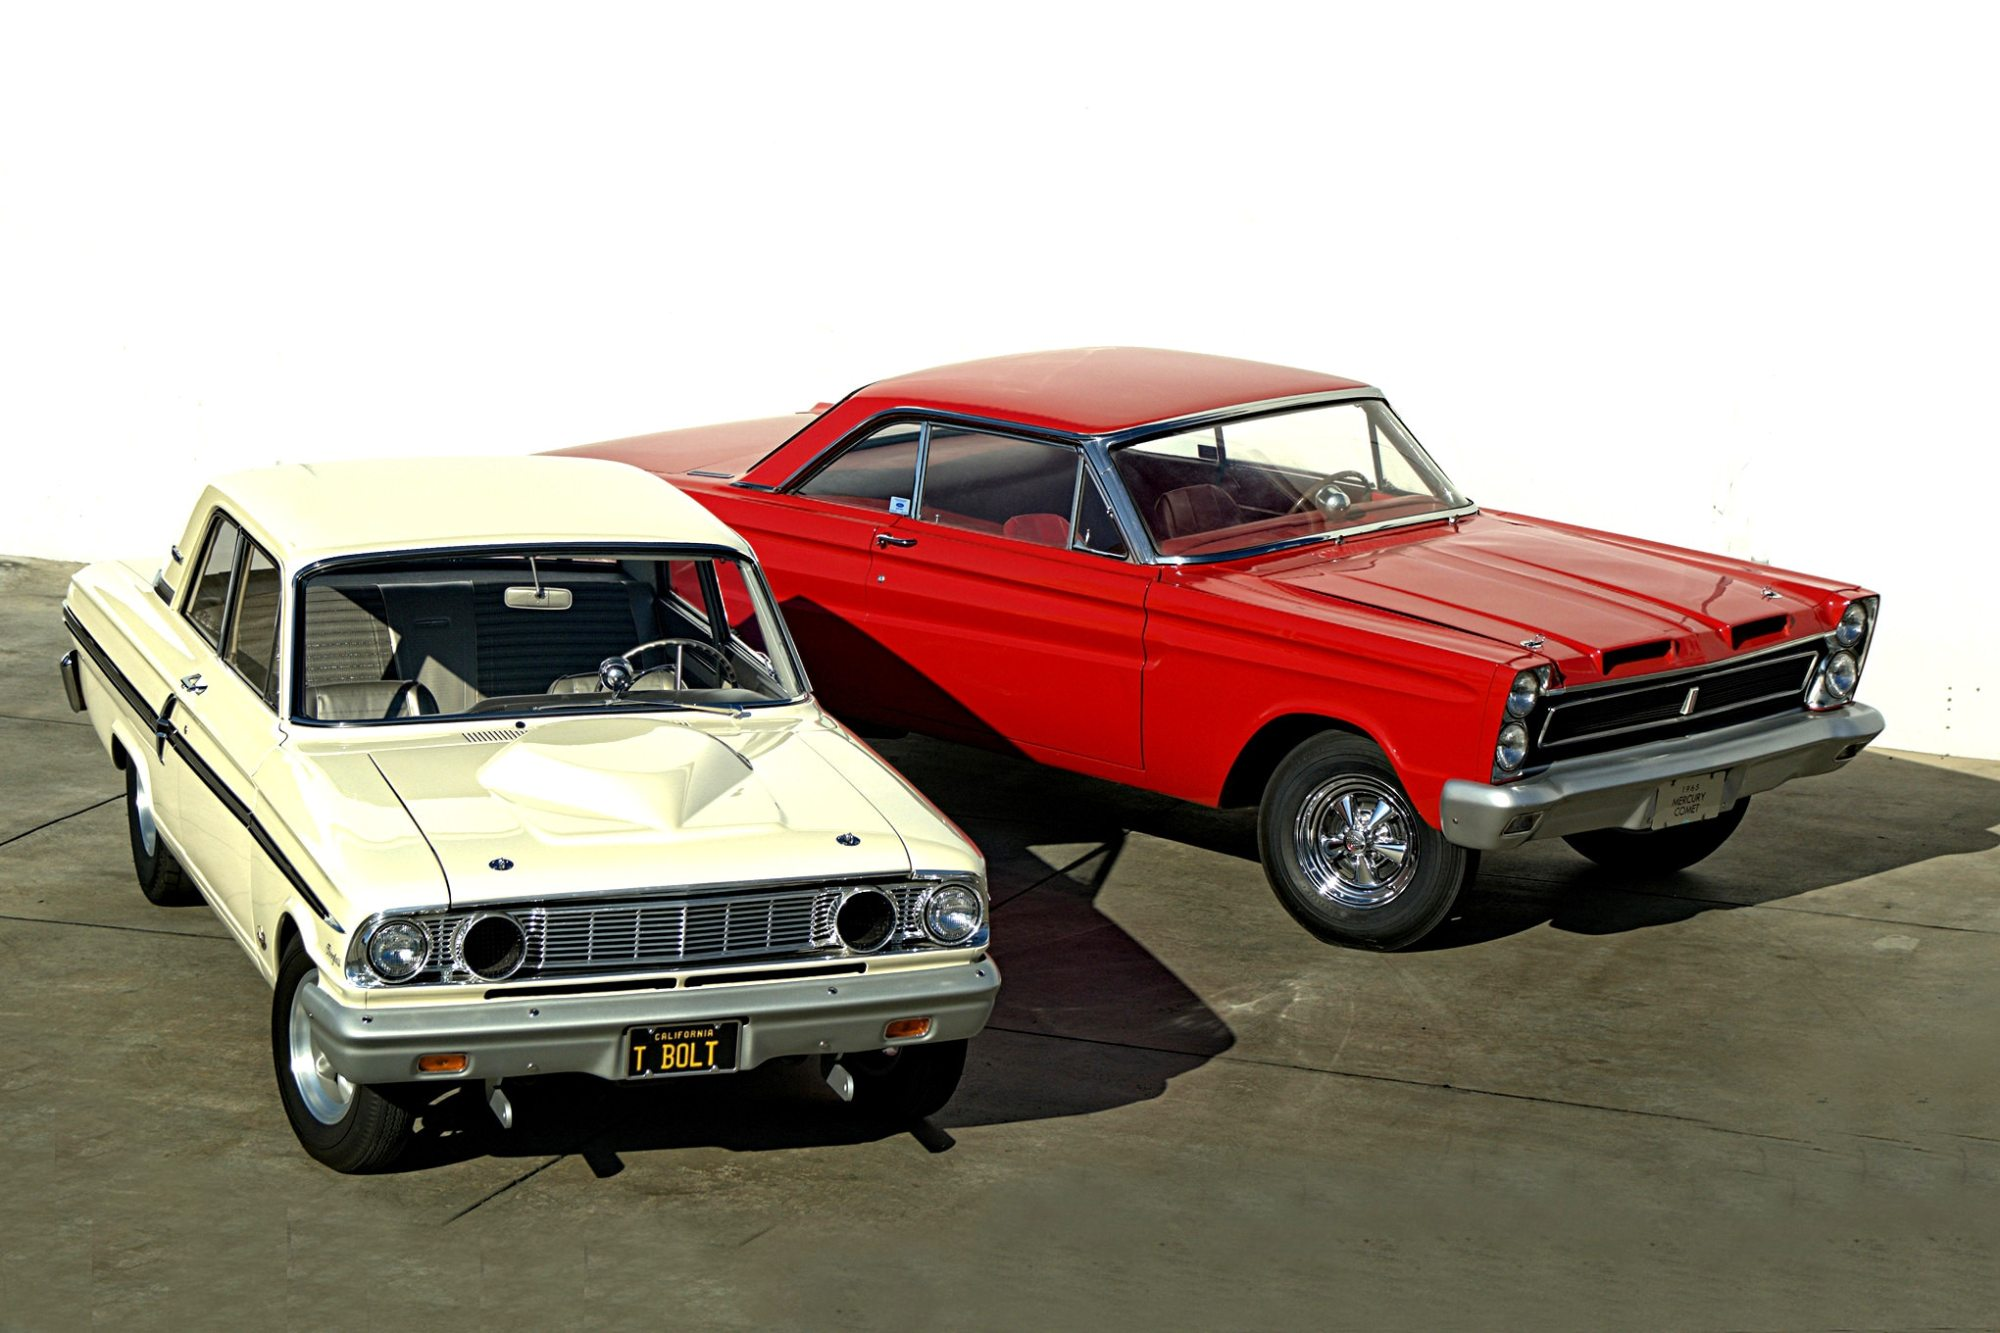 hight resolution of 1964 ford fairlane thunderbolt and 1965 mercury comet cyclone represent ford drag racing history of the mid 1960s